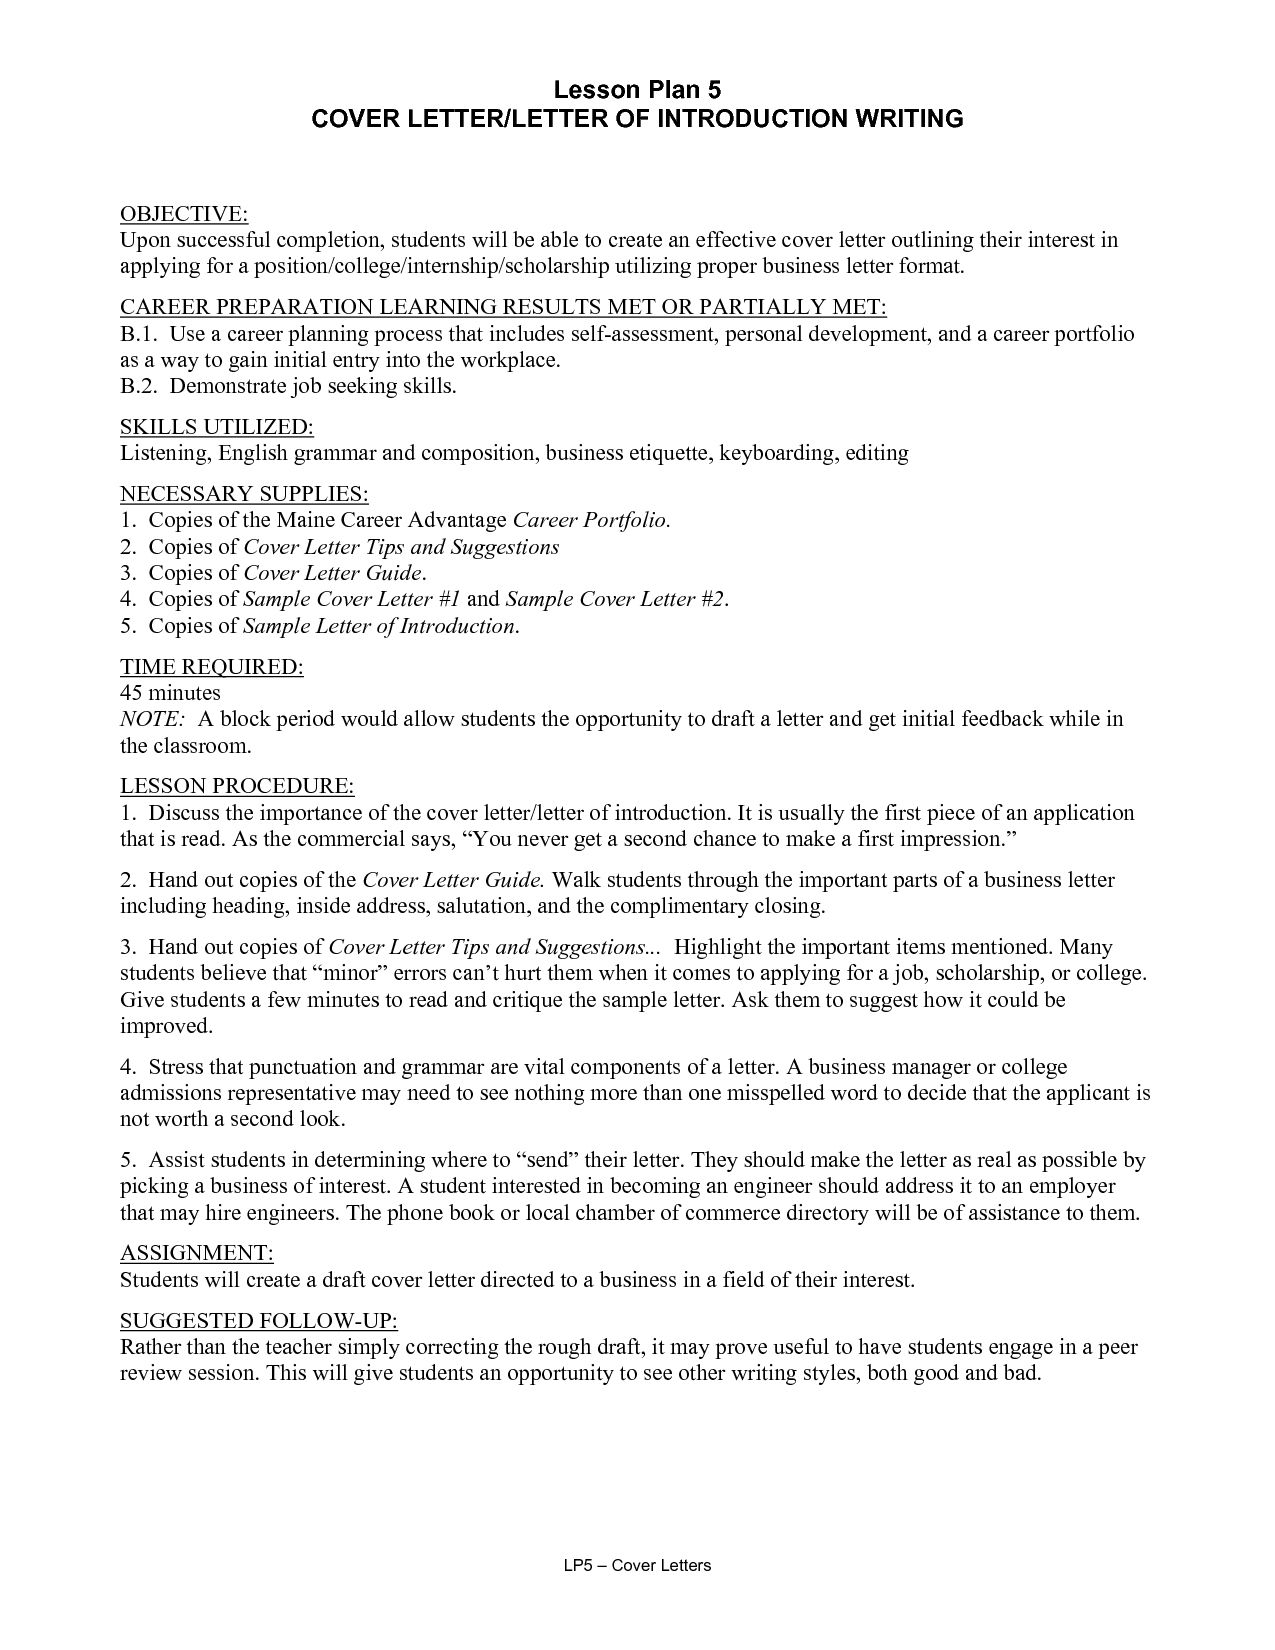 25+ cover letter introduction for resume career objective marketing student internship examples nursing assistant with no experience